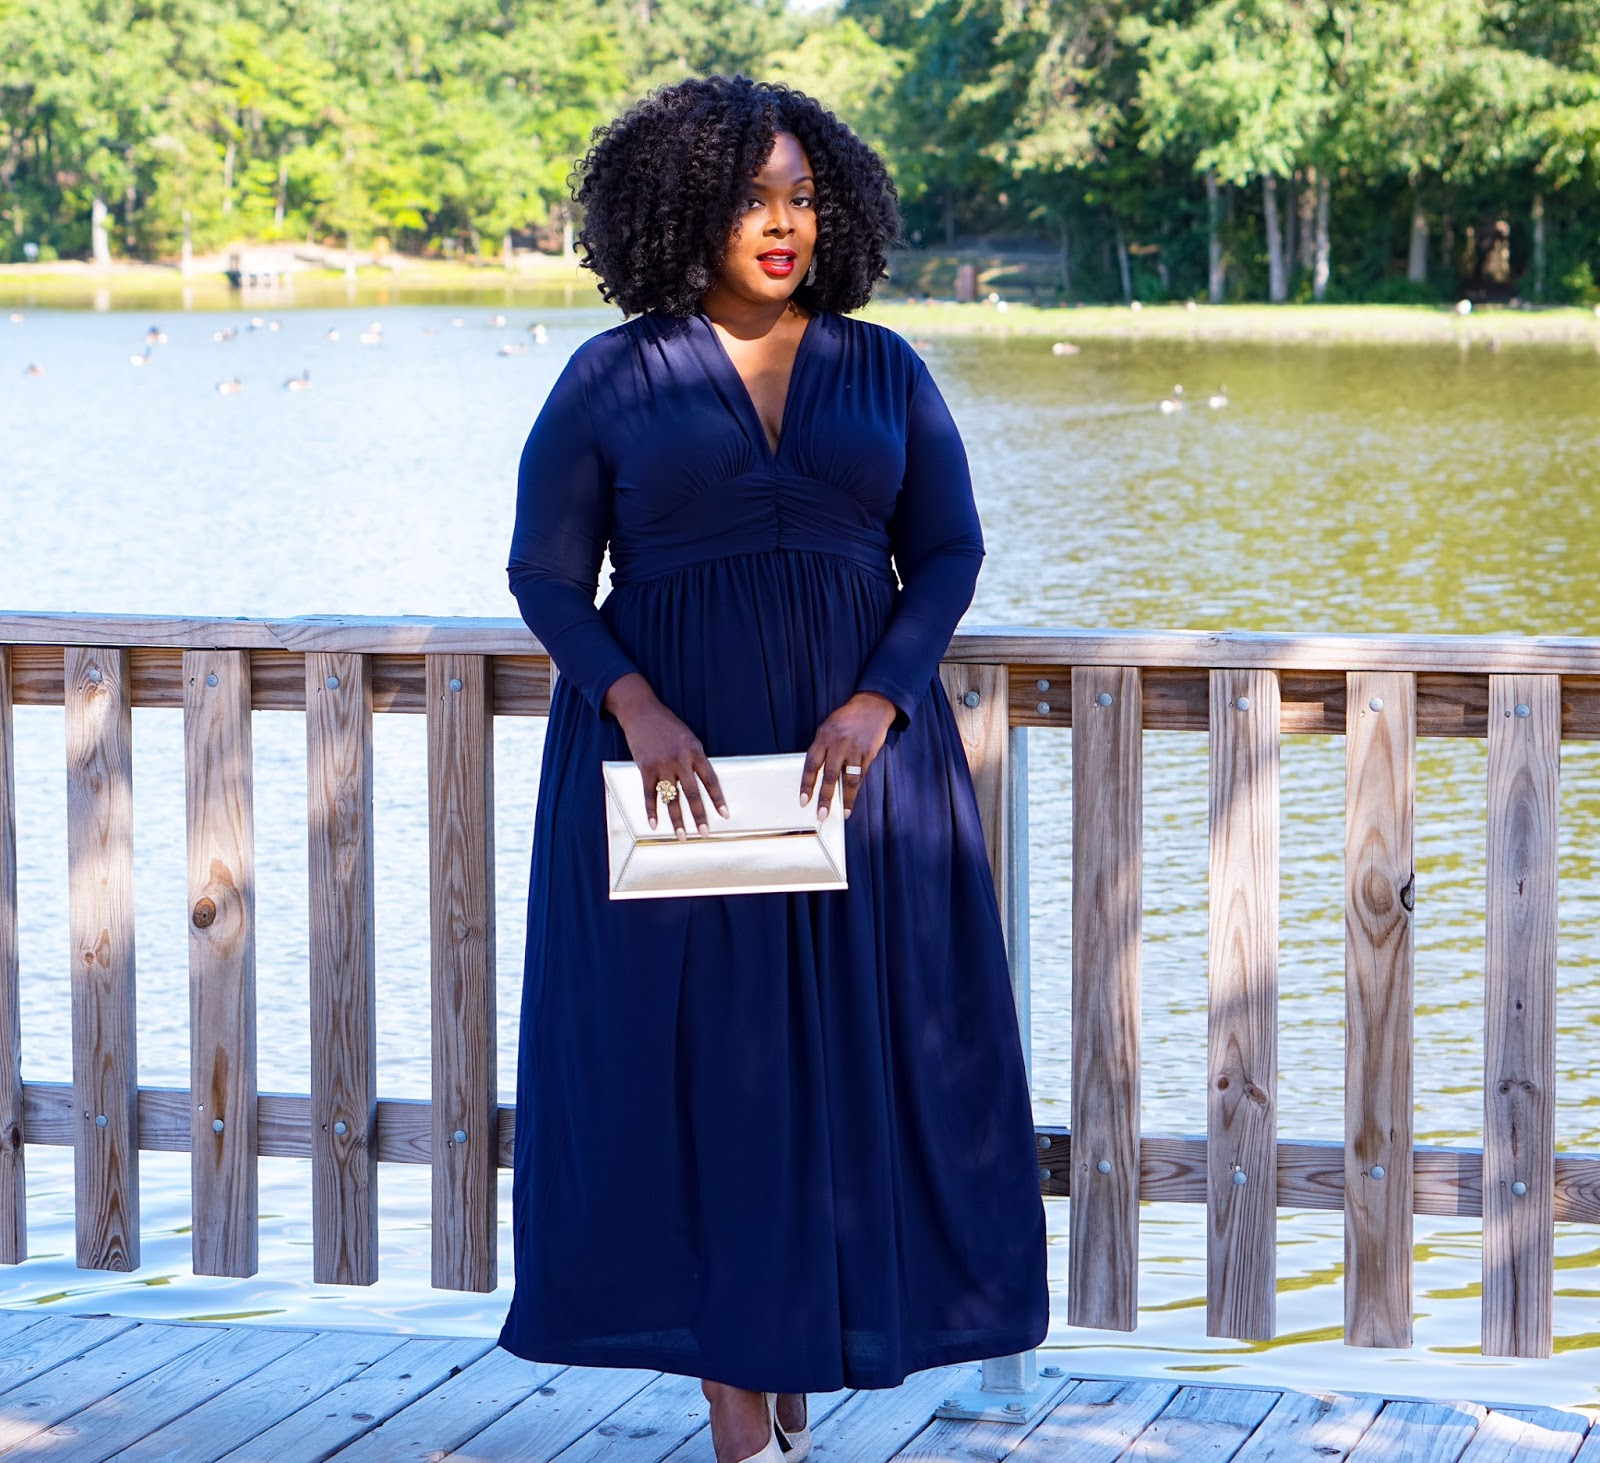 plus size maxidress, plus size navy dress, formal maxidress, plus size formal dress